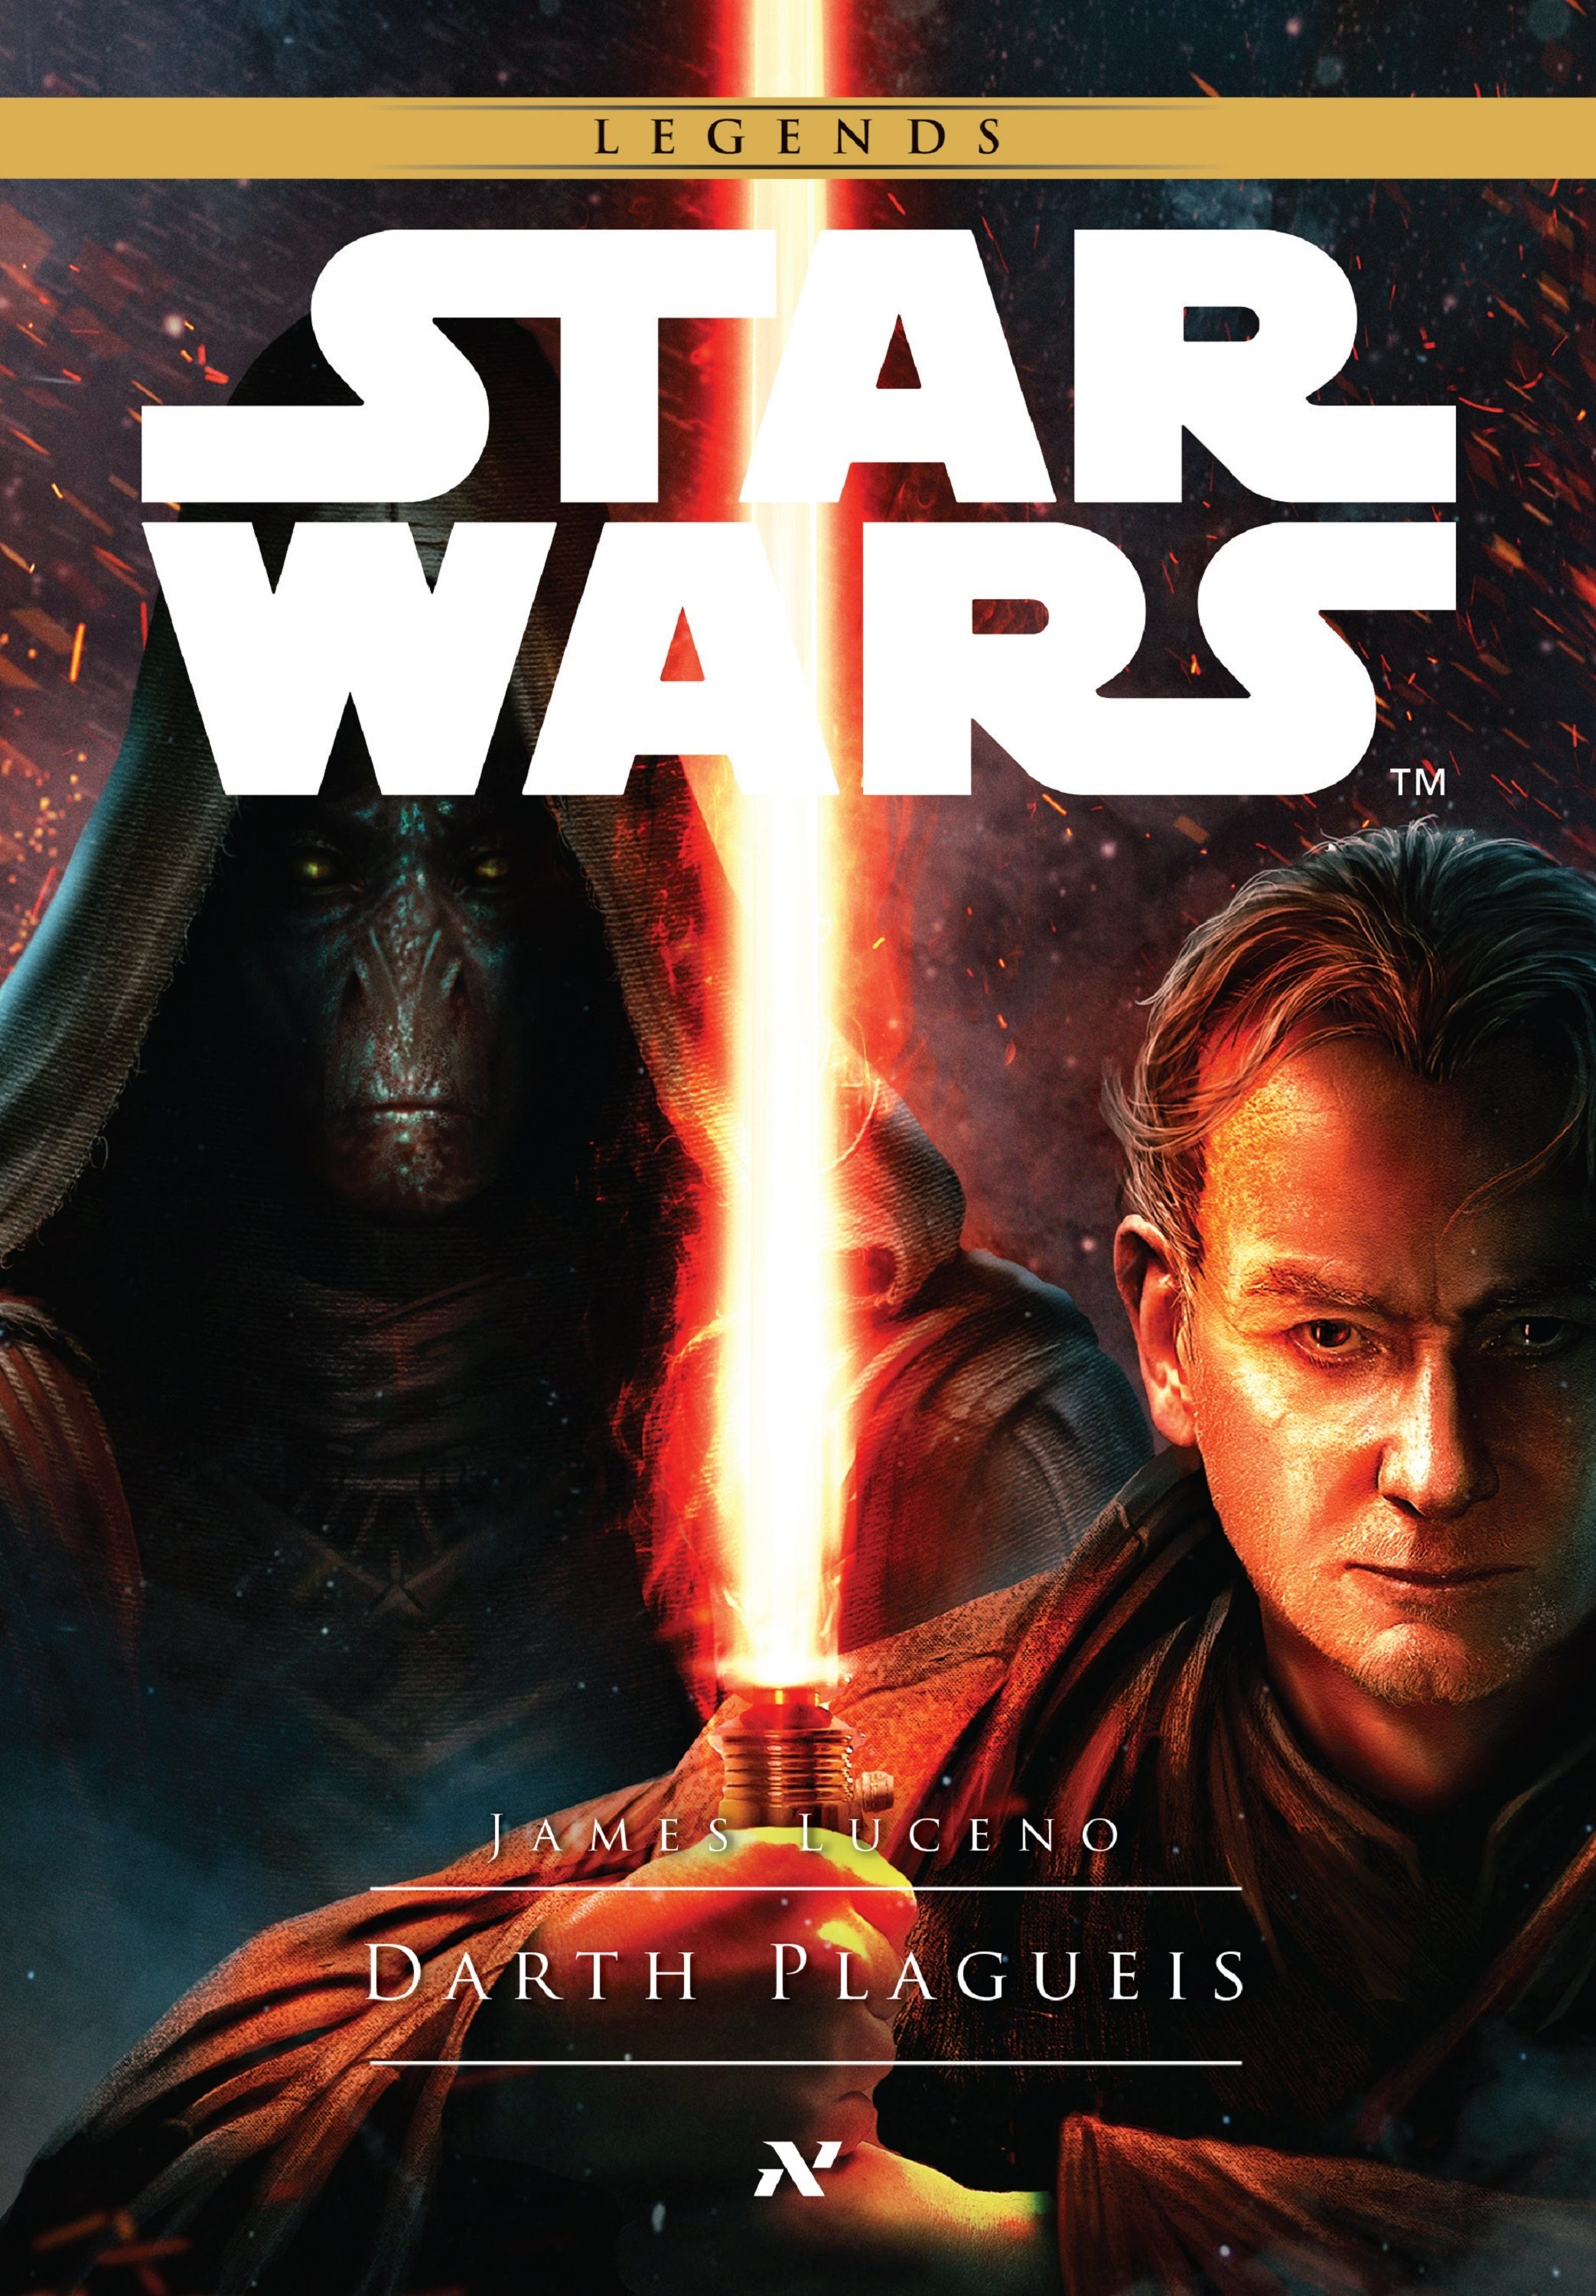 Libros Star Wars Pdf Star Wars Darth Plagueis Ebook James Luceno Descargar Libro